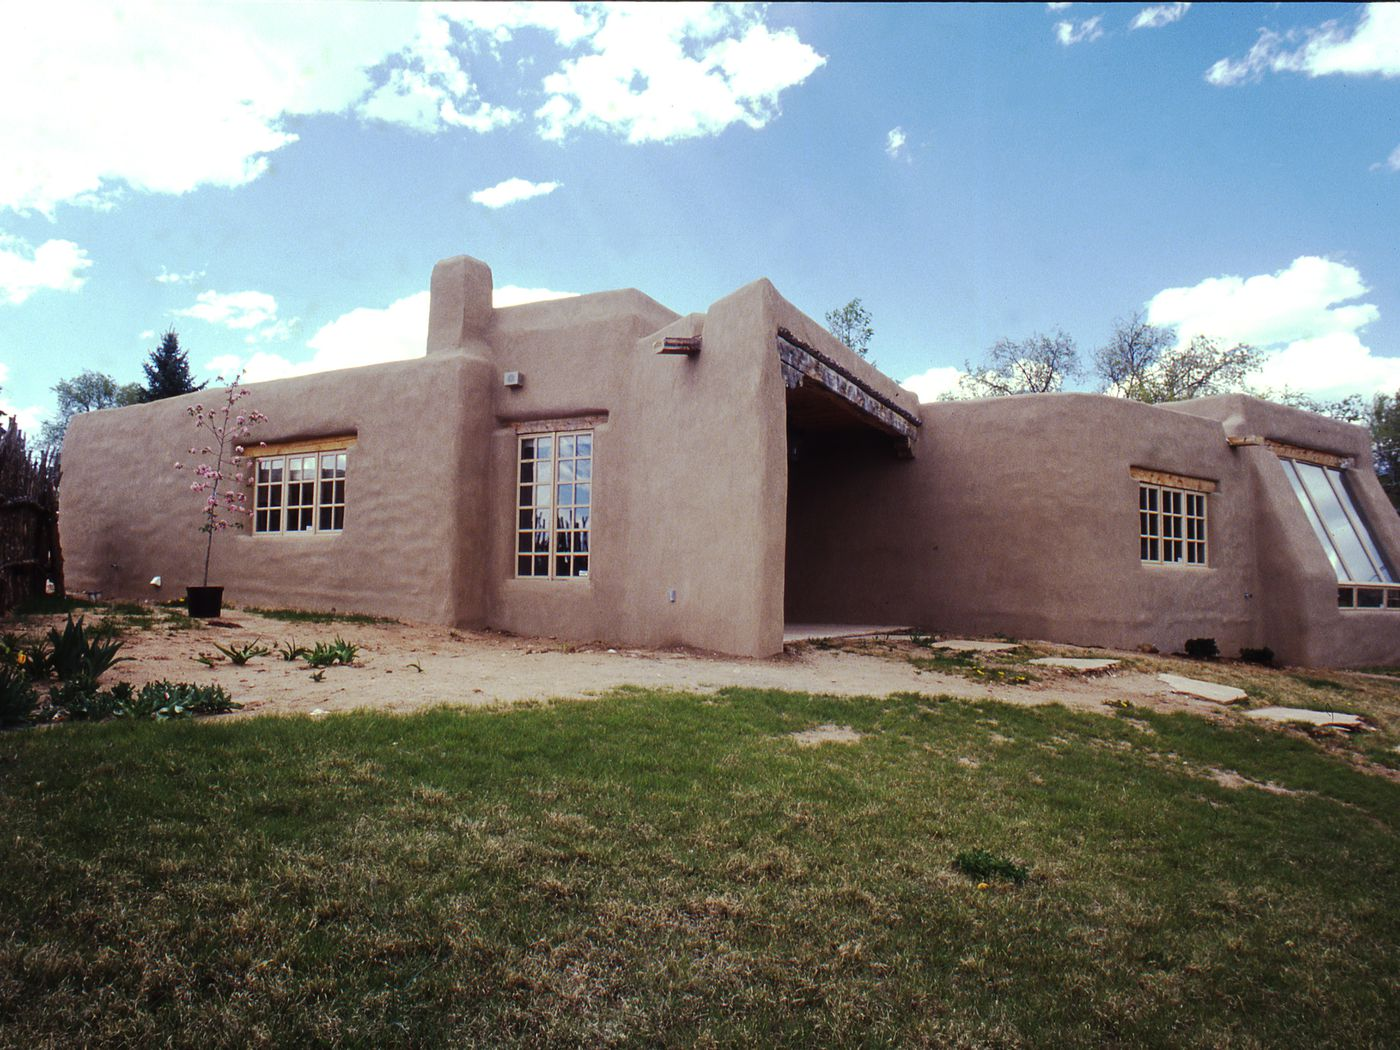 The Santa Fe House This Old House